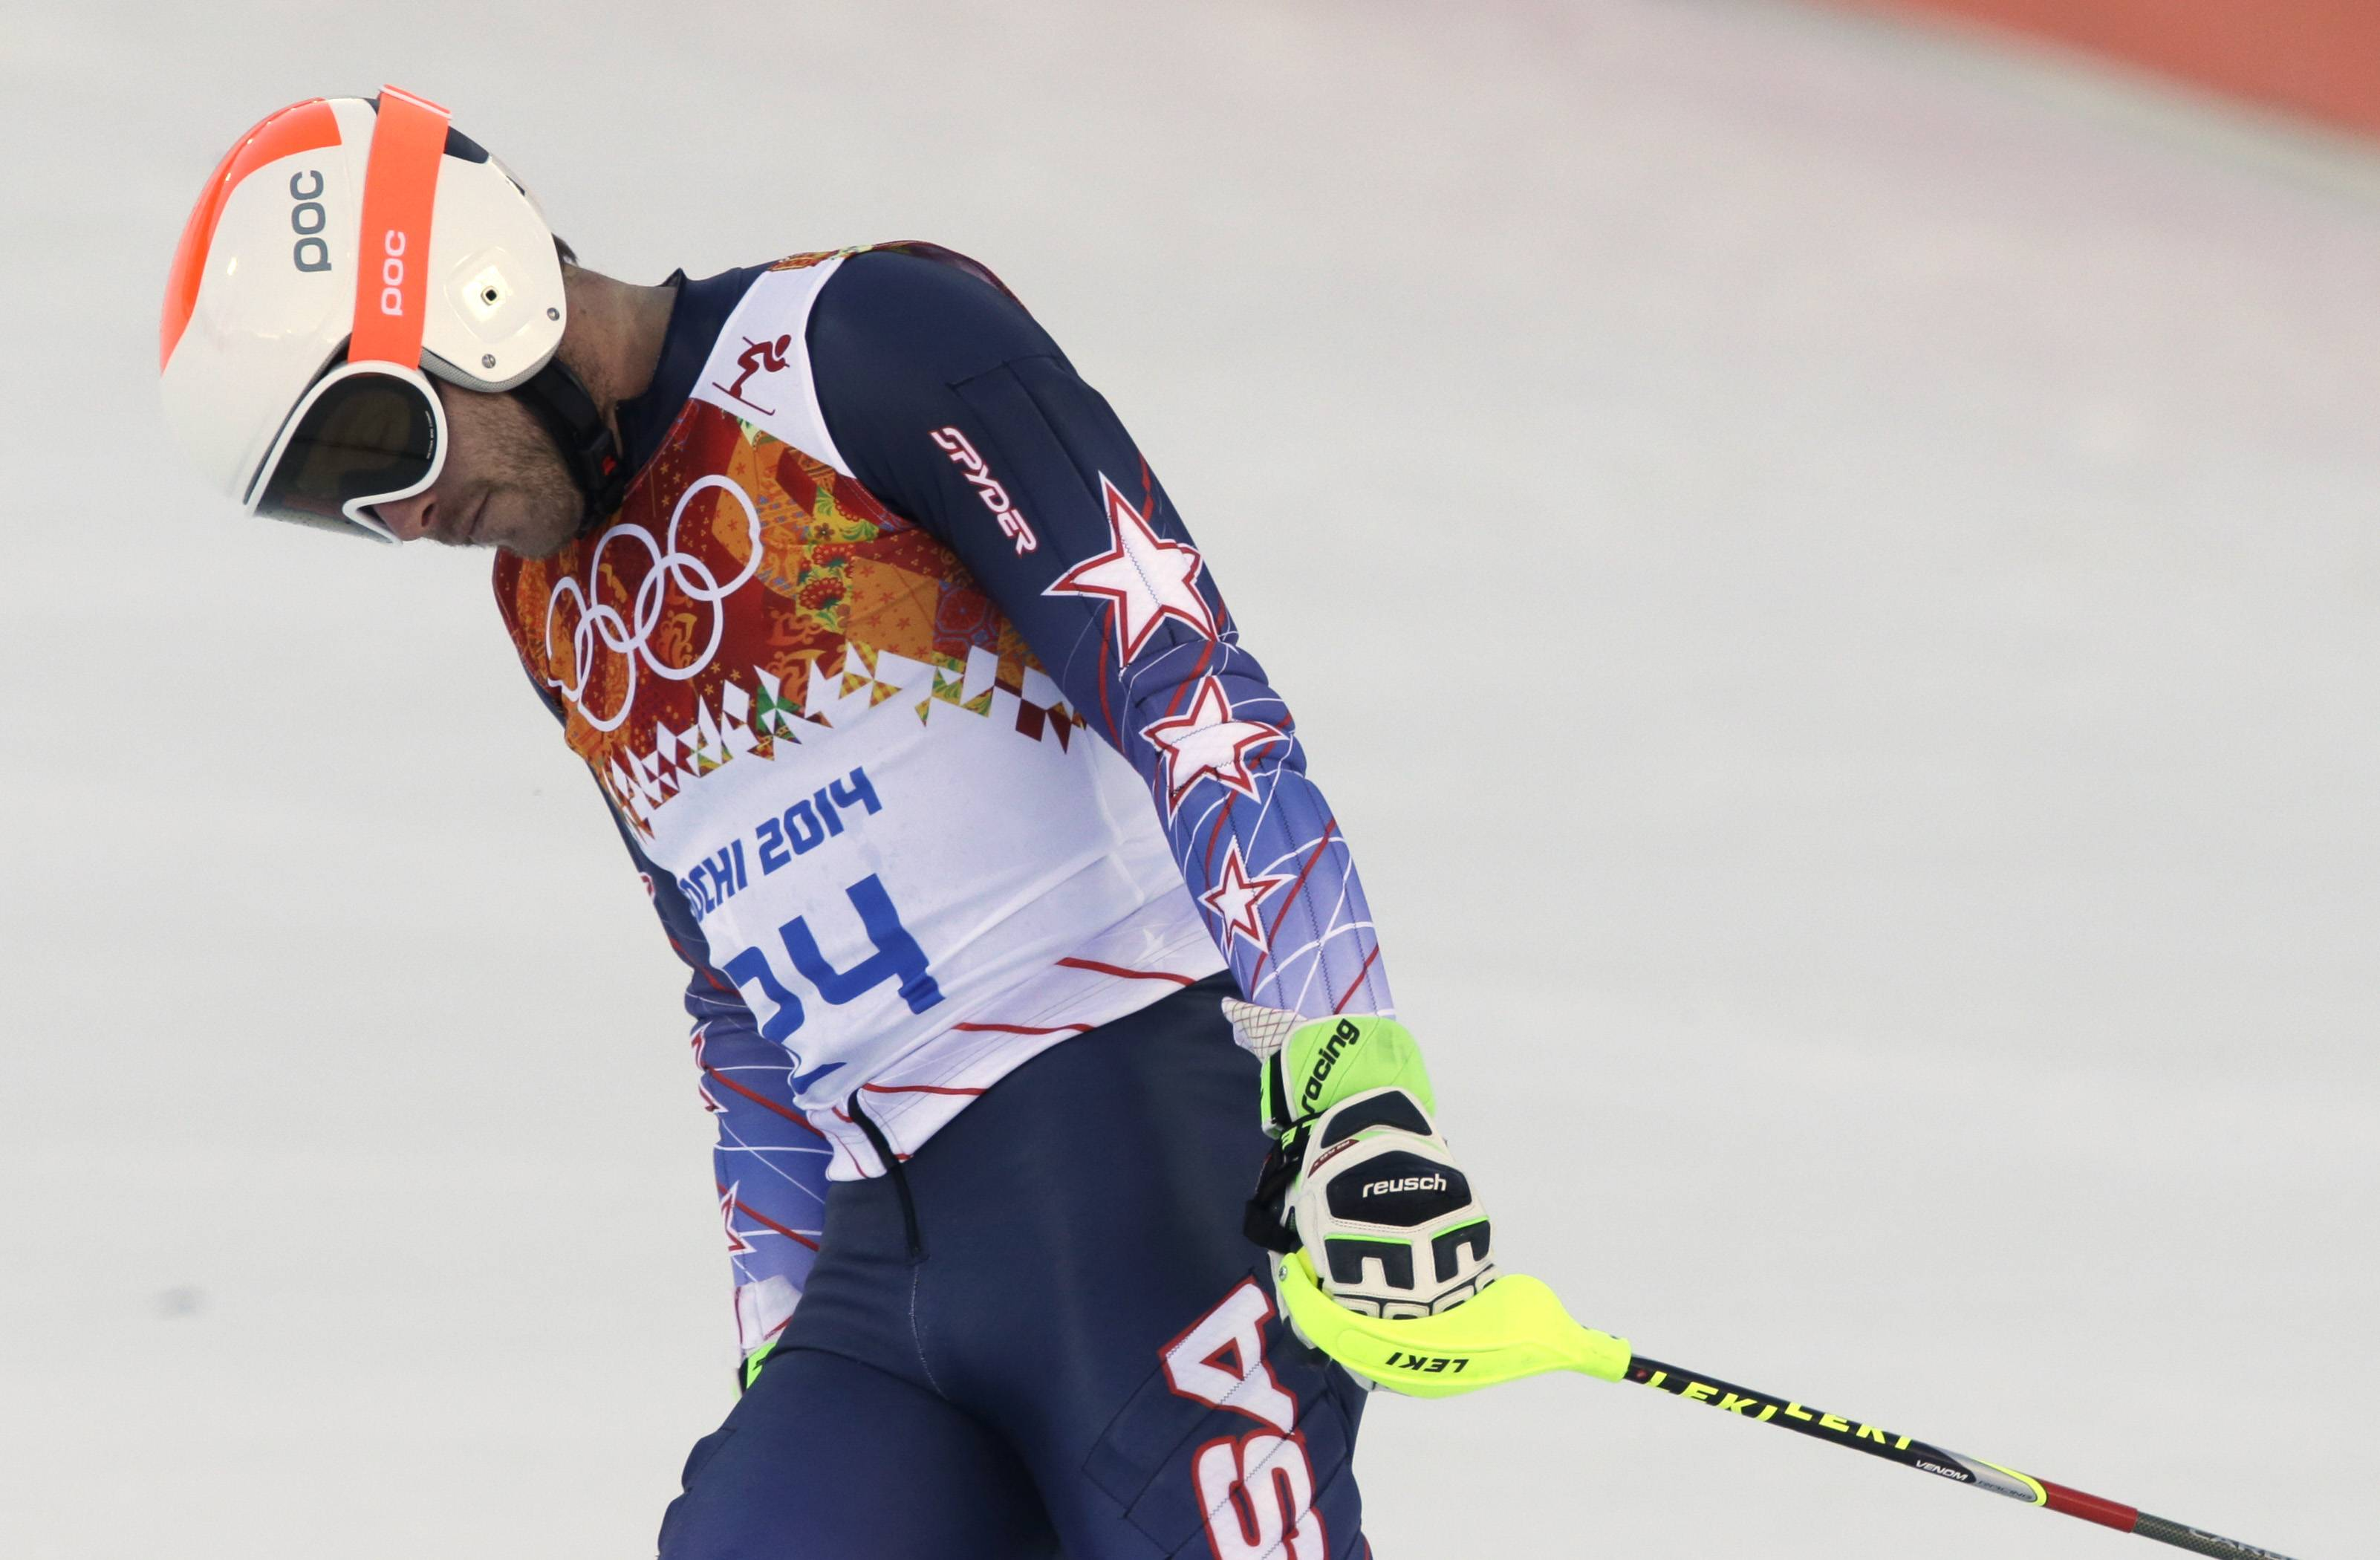 United States' Bode Miller reacts after competing in the slalom portion of the men's supercombined at the Sochi 2014 Winter Olympics, Friday, Feb. 14, 2014, in Krasnaya Polyana, Russia.